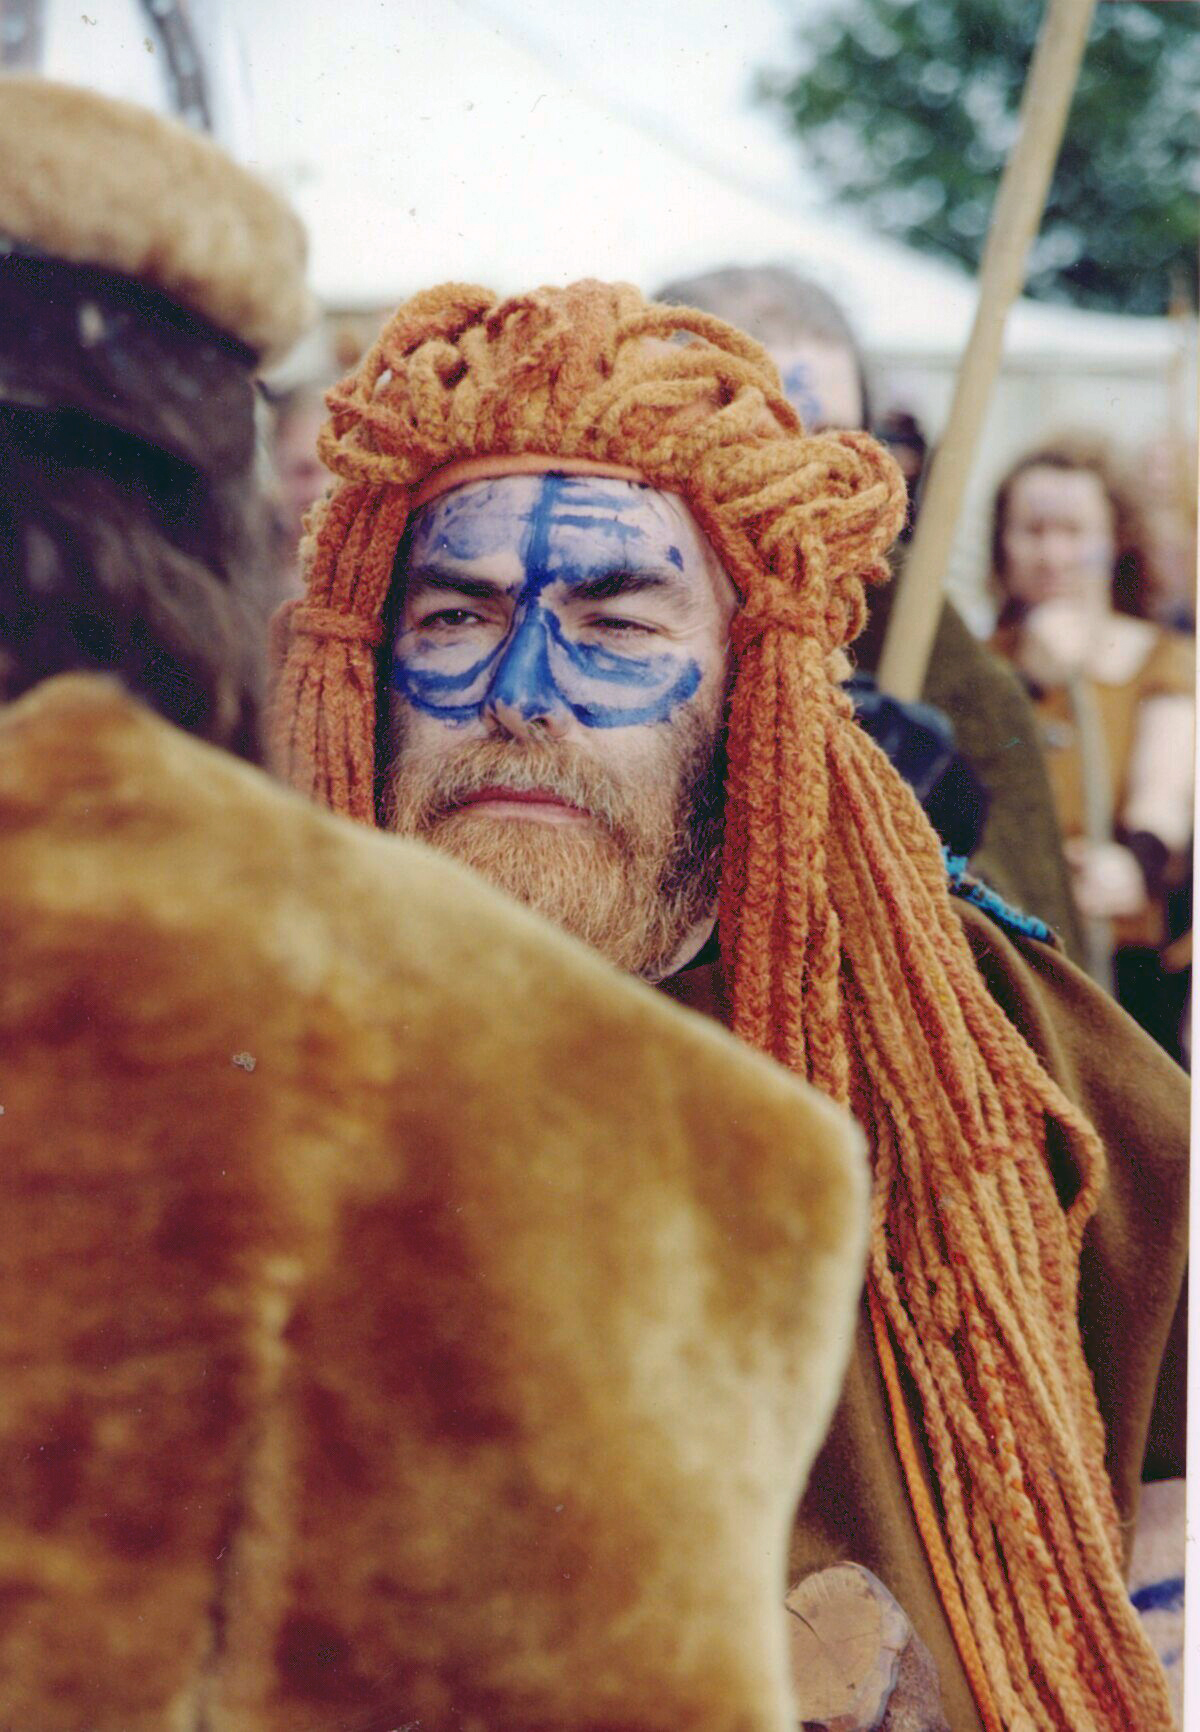 The Dagda, played by Daniel Maher, at Moytura 2000